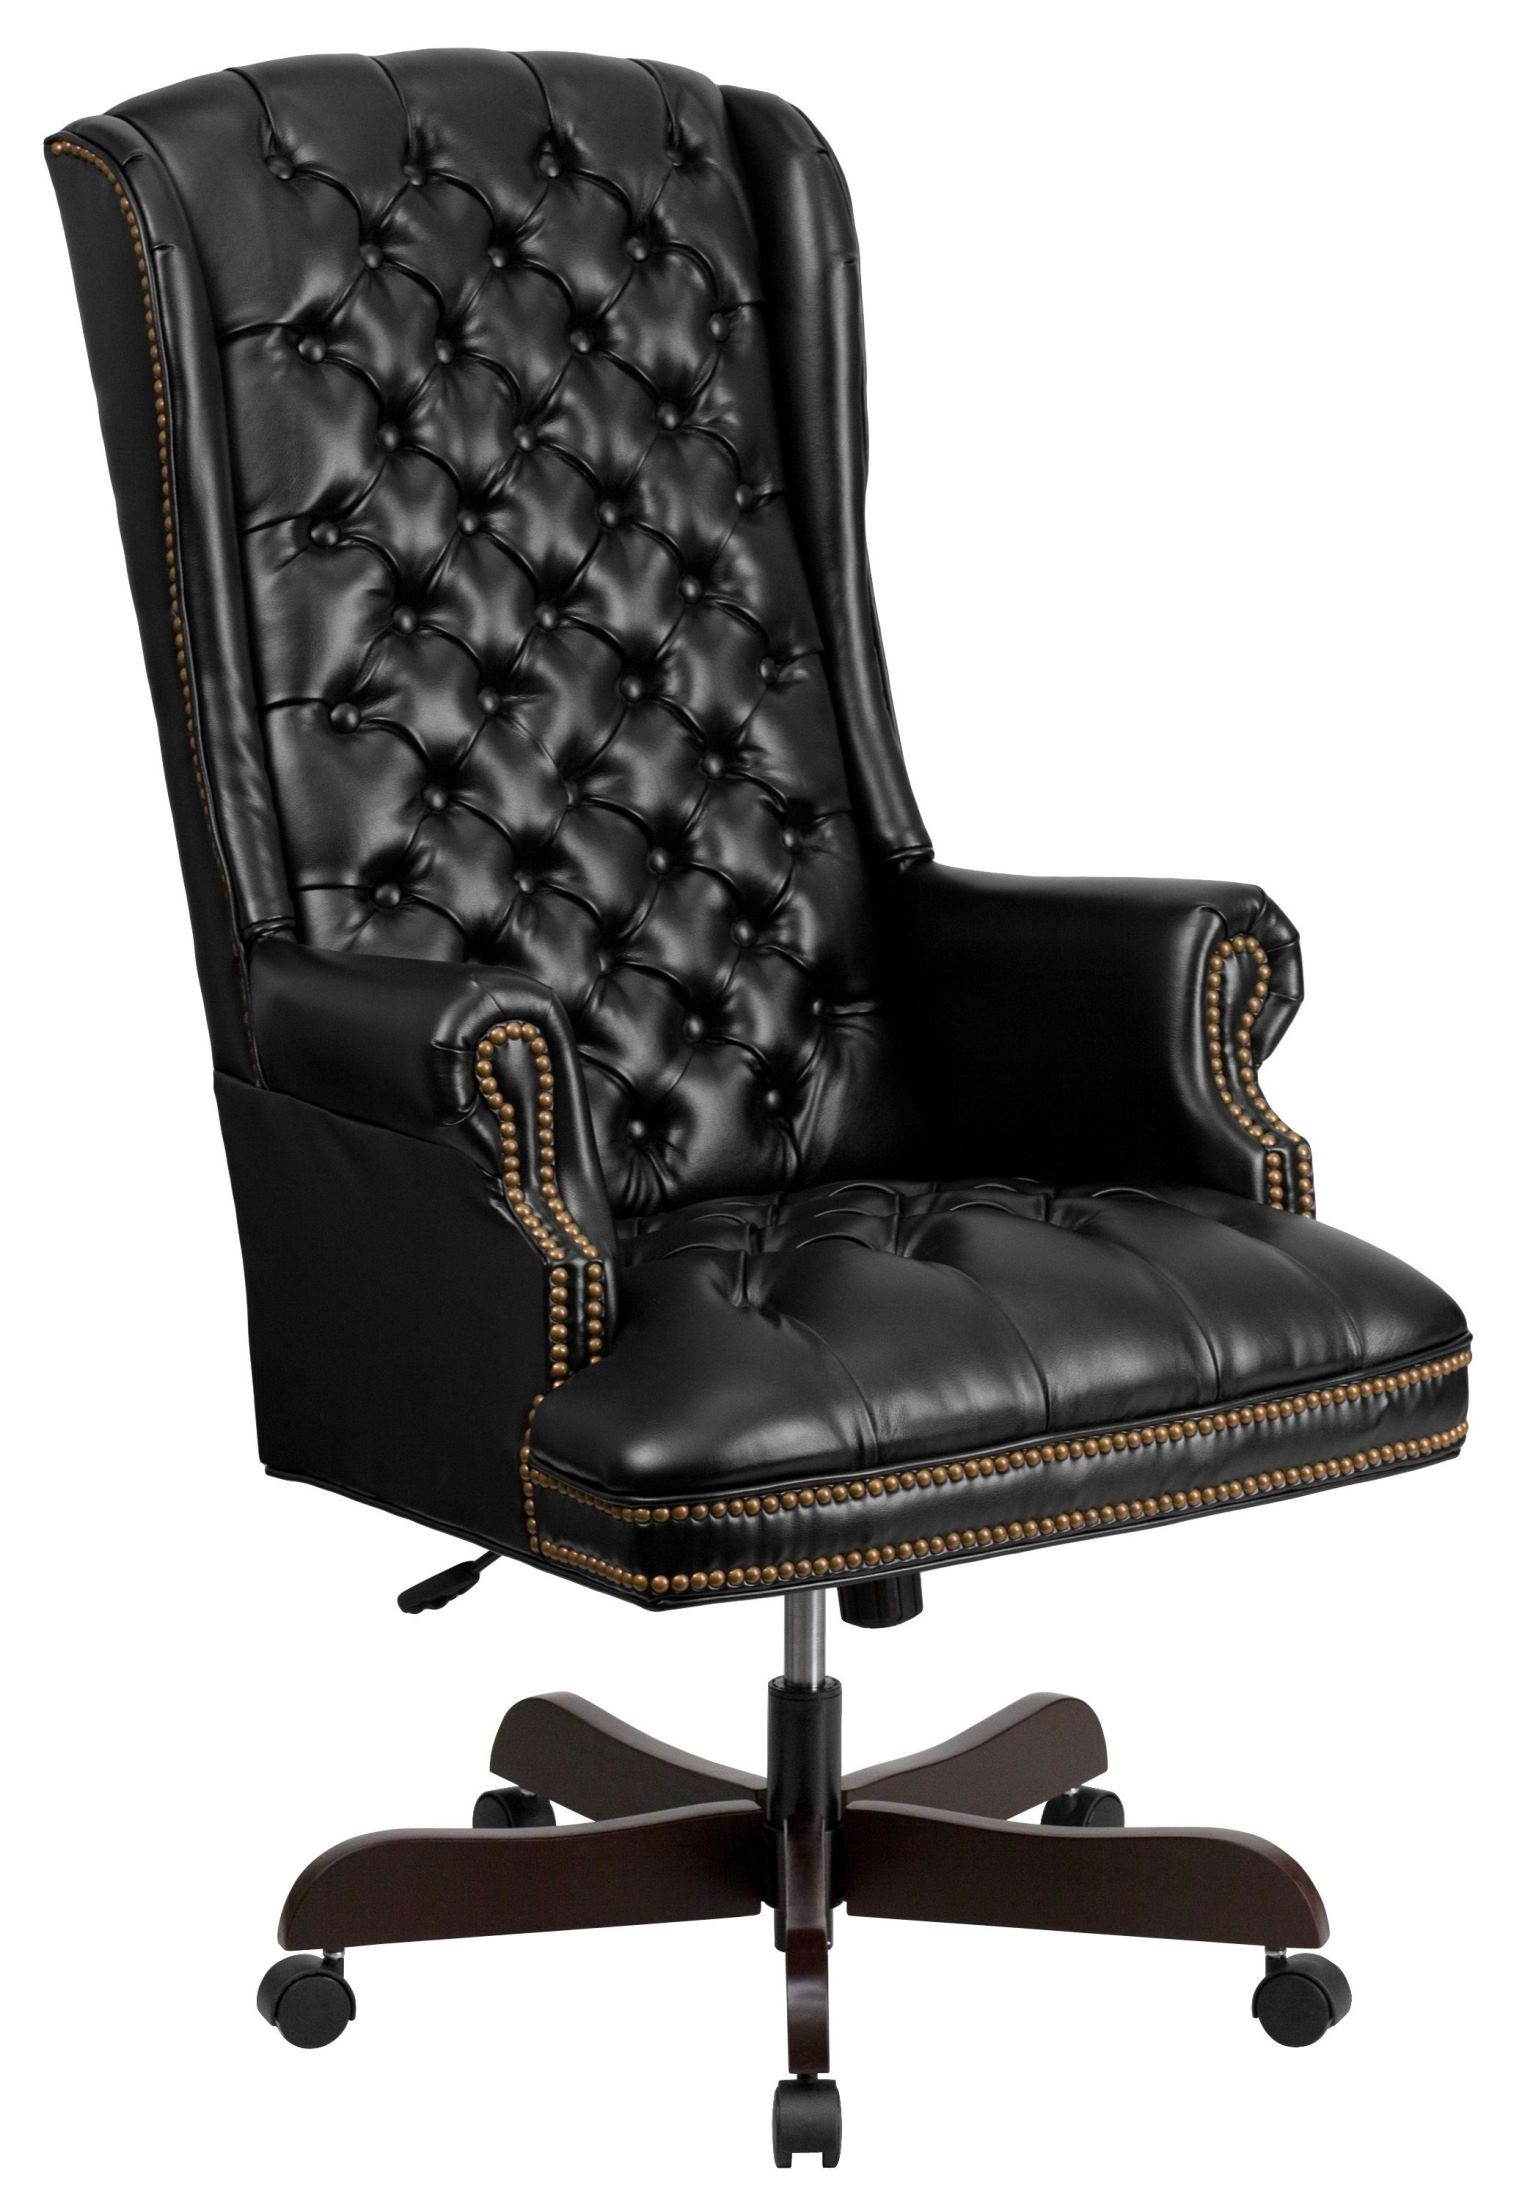 White And Black Office Chair High Back Tufted Black Executive Office Chair From